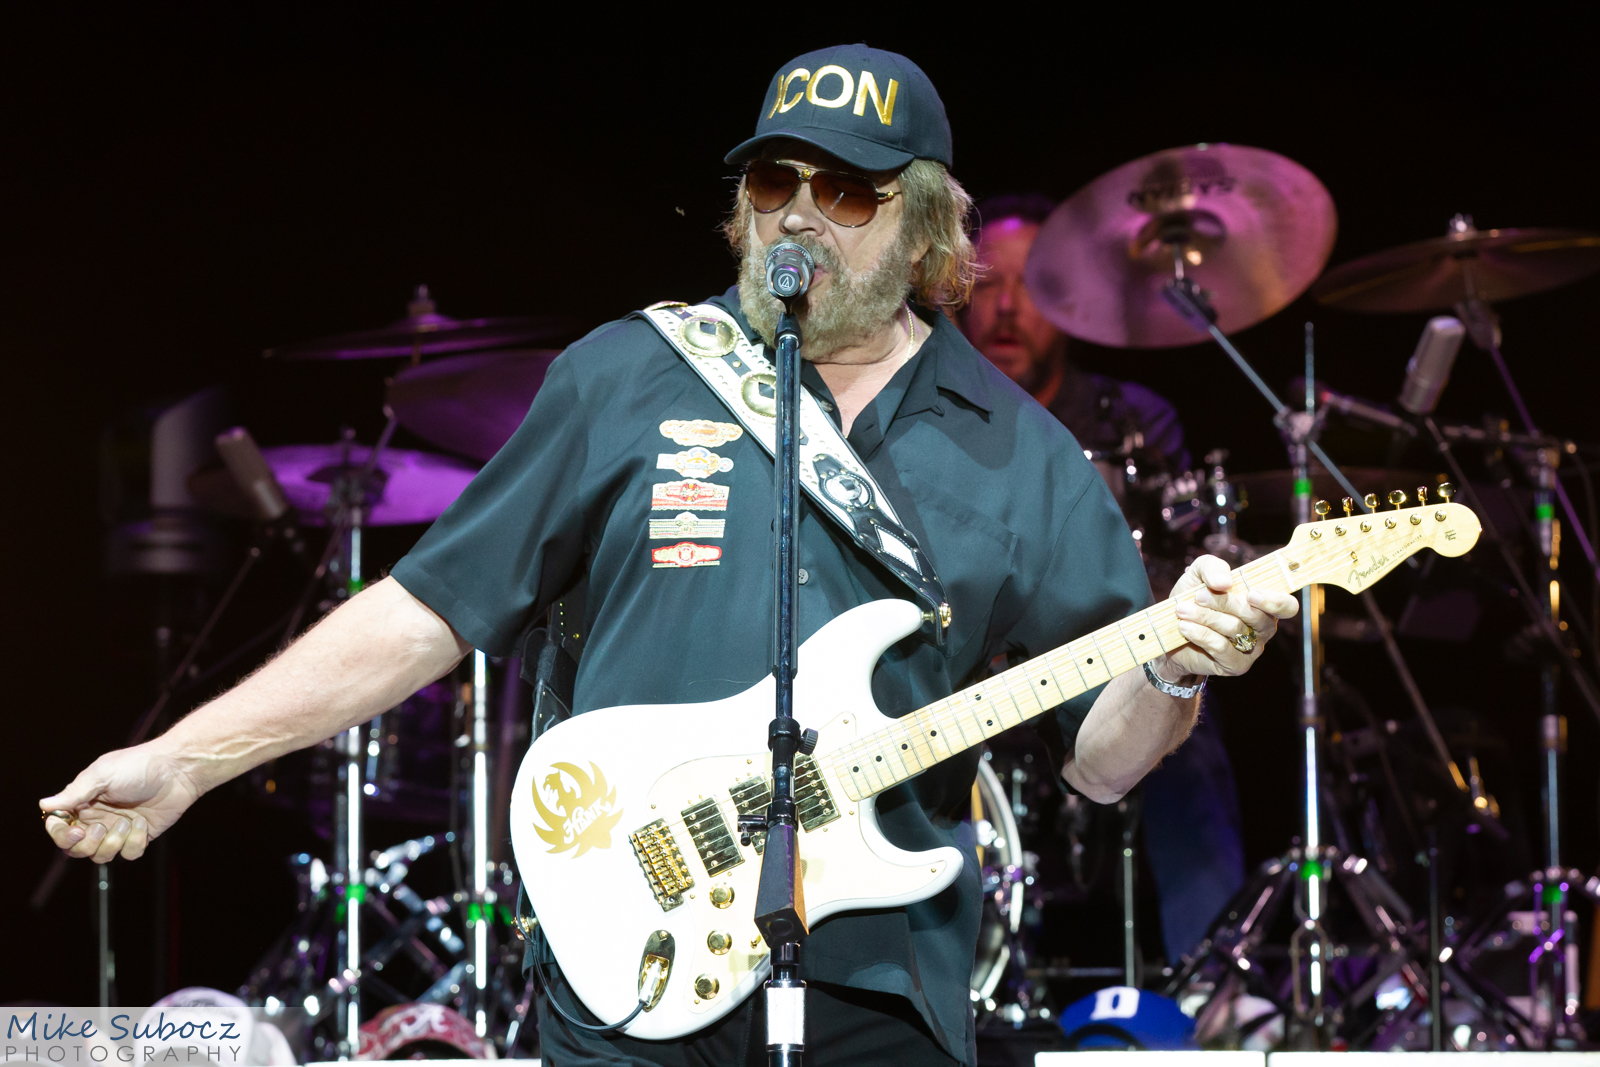 Hank Williams Jr concert image